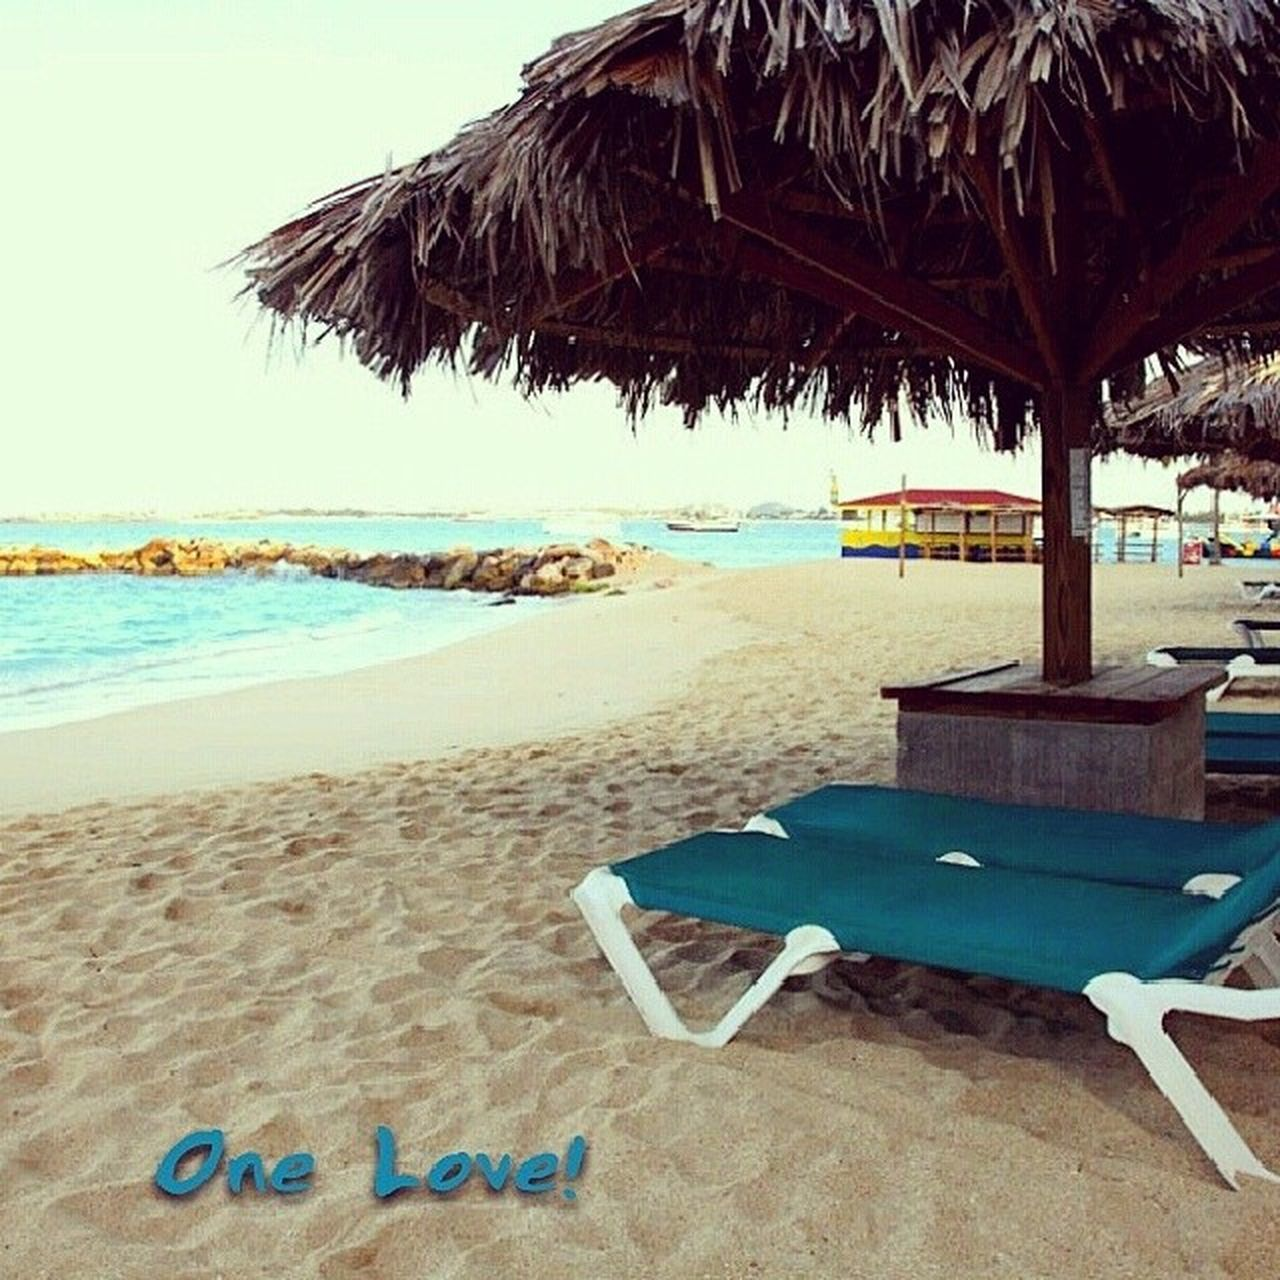 beach, sand, sea, shore, day, thatched roof, vacations, chair, tranquility, tranquil scene, no people, water, outdoors, horizon over water, relaxation, nature, scenics, clear sky, beauty in nature, sky